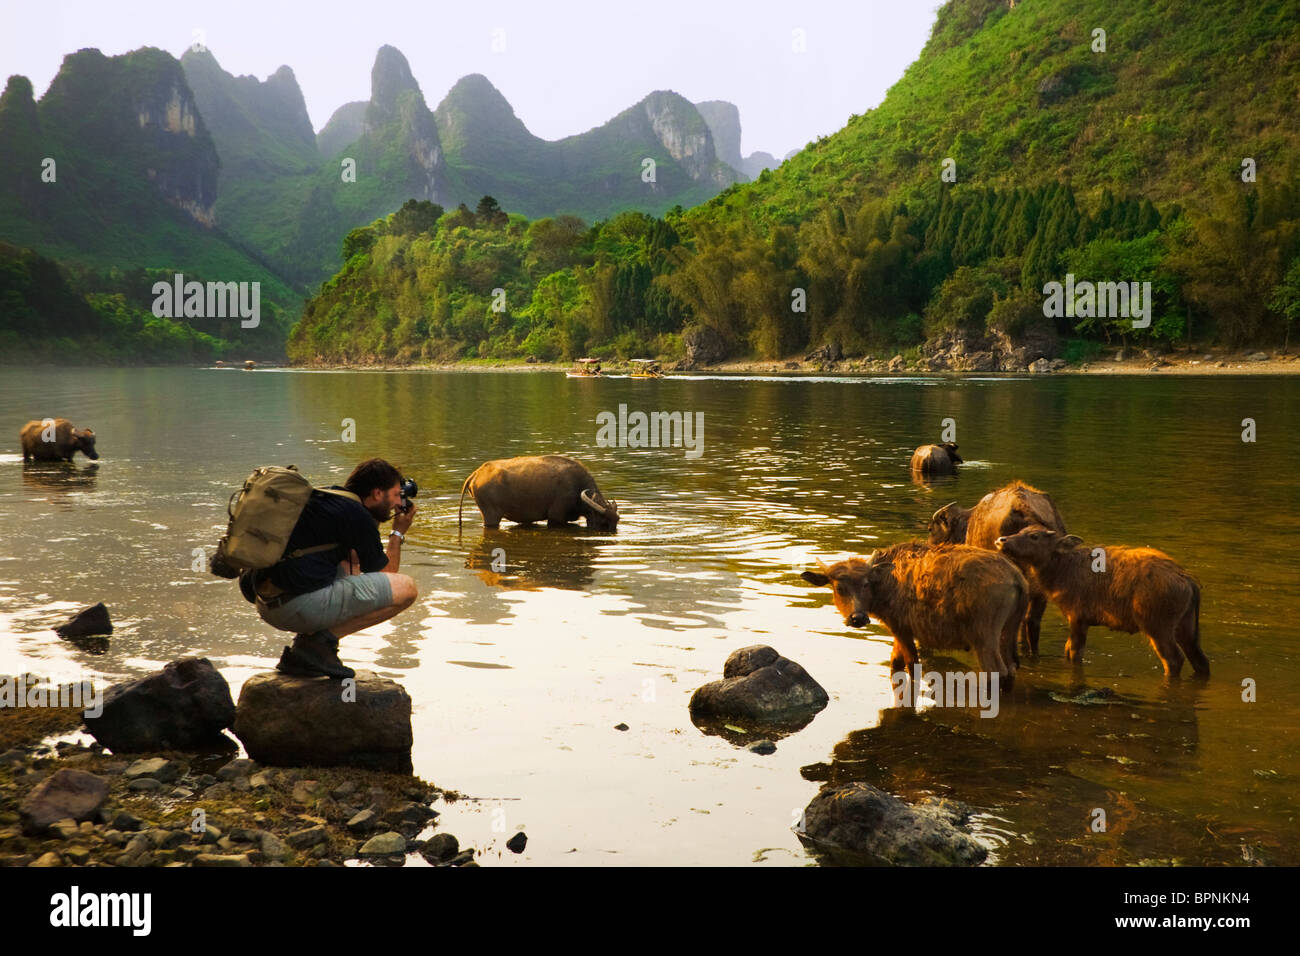 A tourist takes a picture of a buffalo in Yangshuo, Guangxi Province, China. Asia Stock Photo